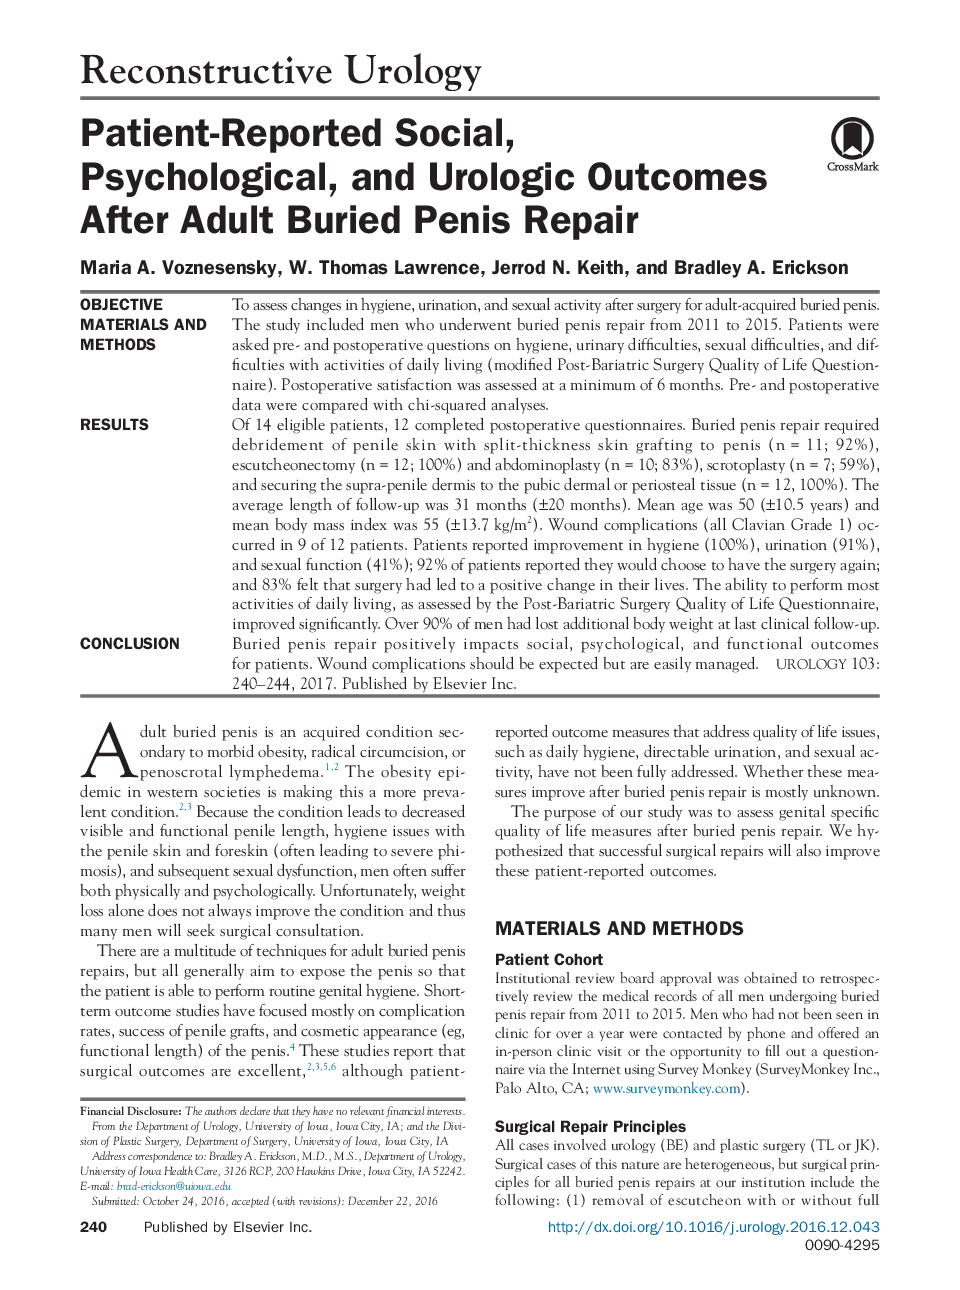 Patient-Reported Social, Psychological, and Urologic Outcomes After Adult Buried Penis Repair